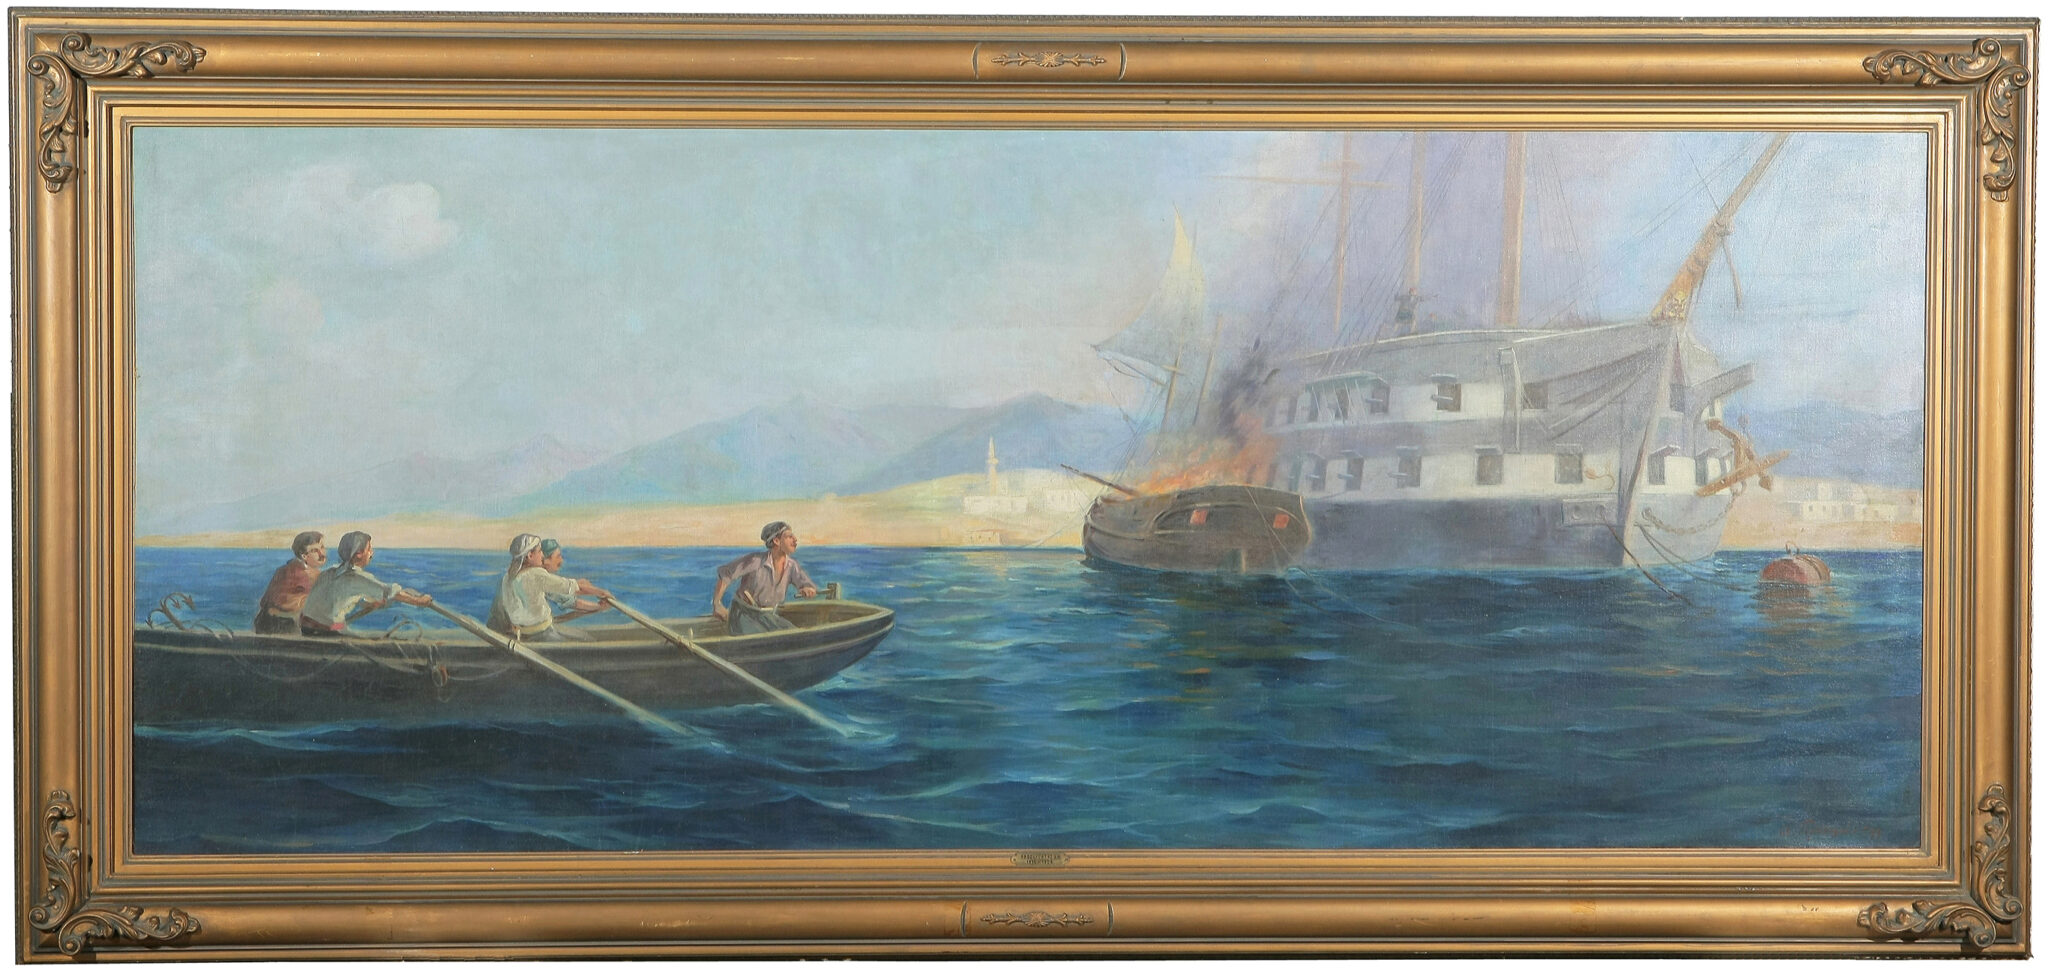 HELLENIC AUCTIONS GREEK ART OF QUALITY- 29TH MAY 2021